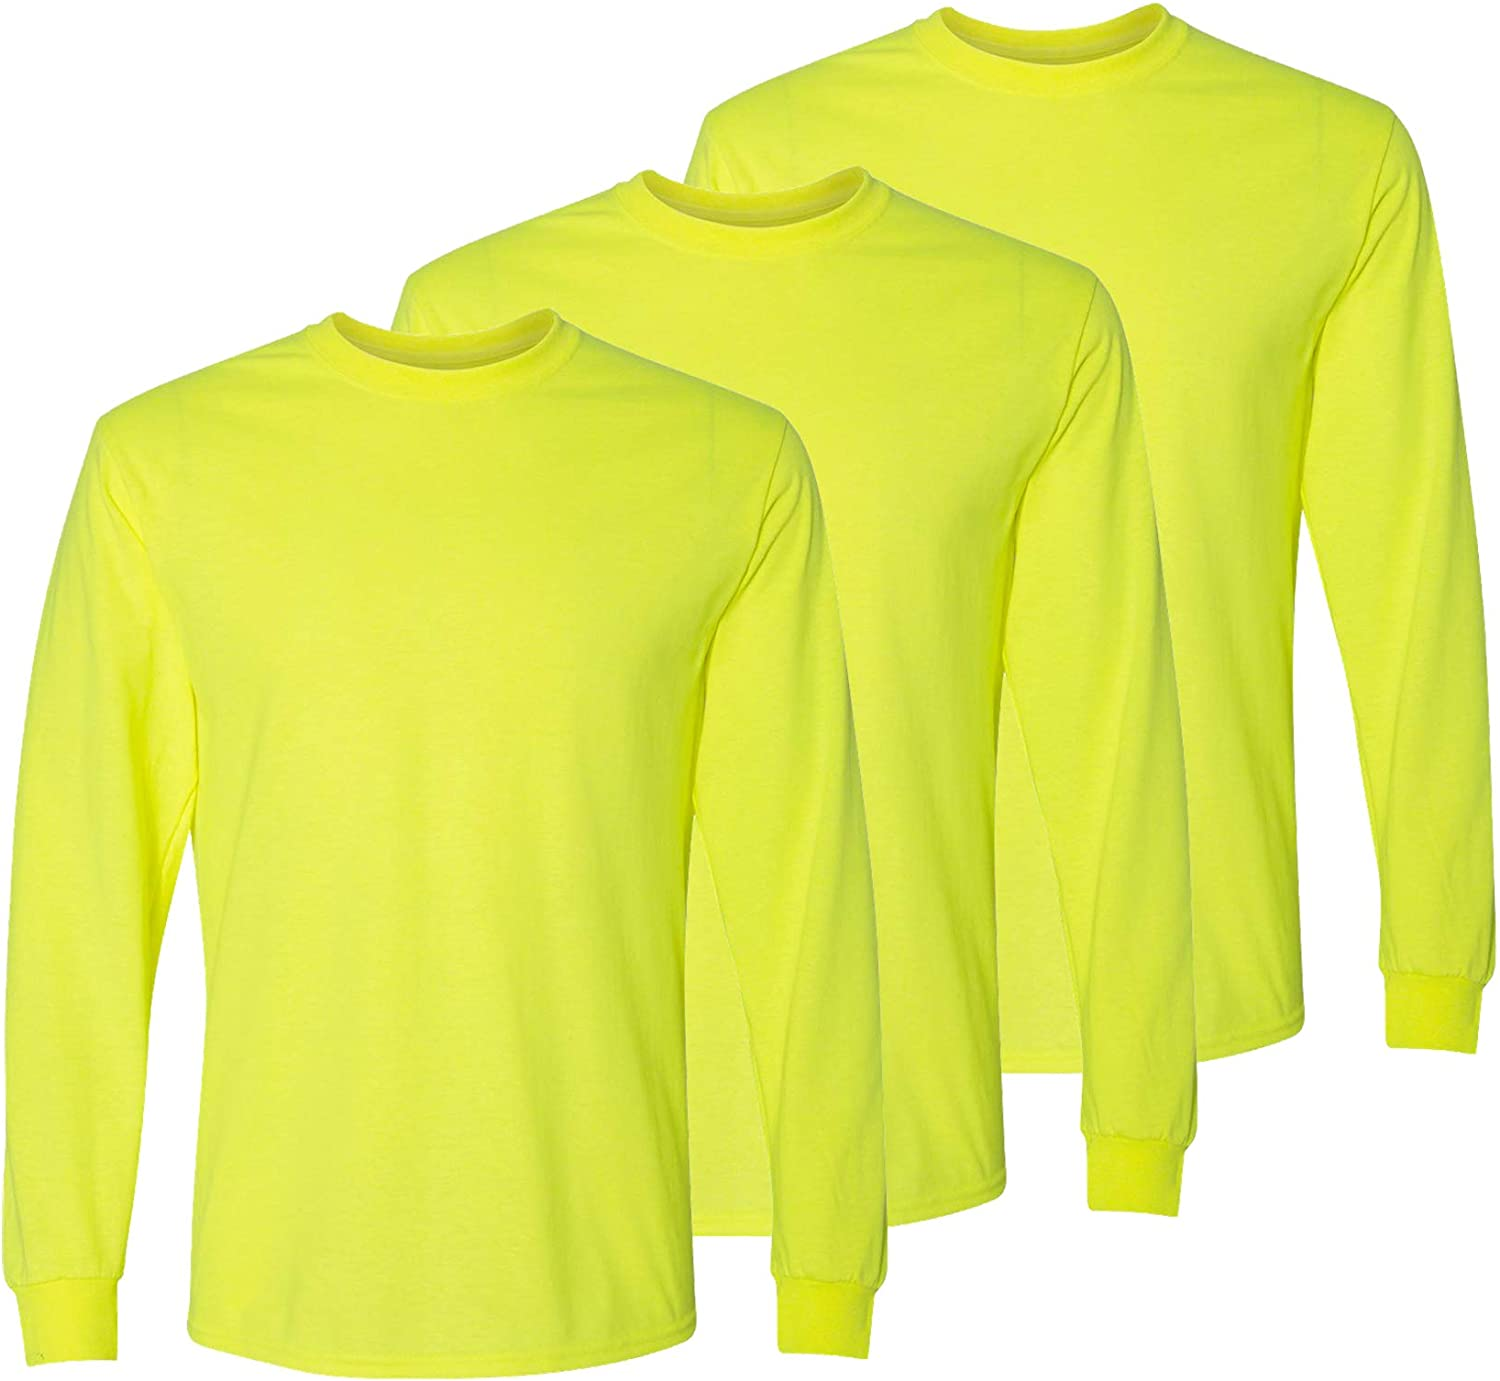 Safety High Outstanding Visibility Long Sleeve Work Construction Pack Alternative dealer Shirts